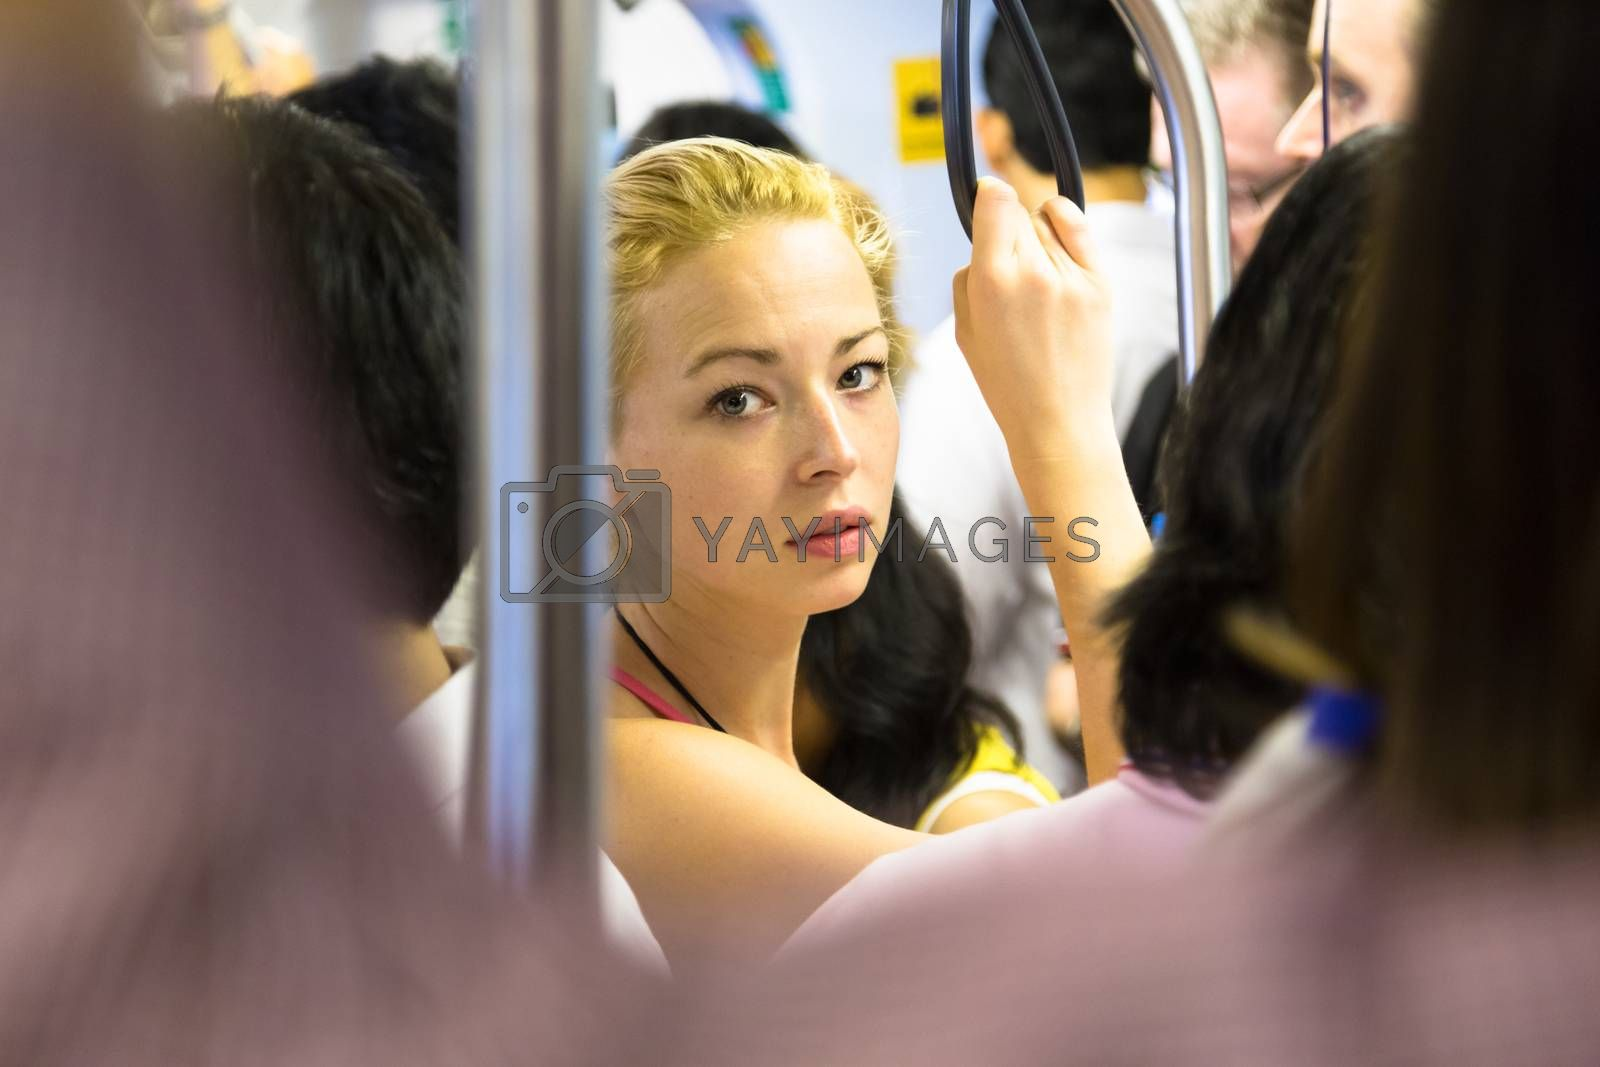 Blonde caucasian lady traveling by public transport.